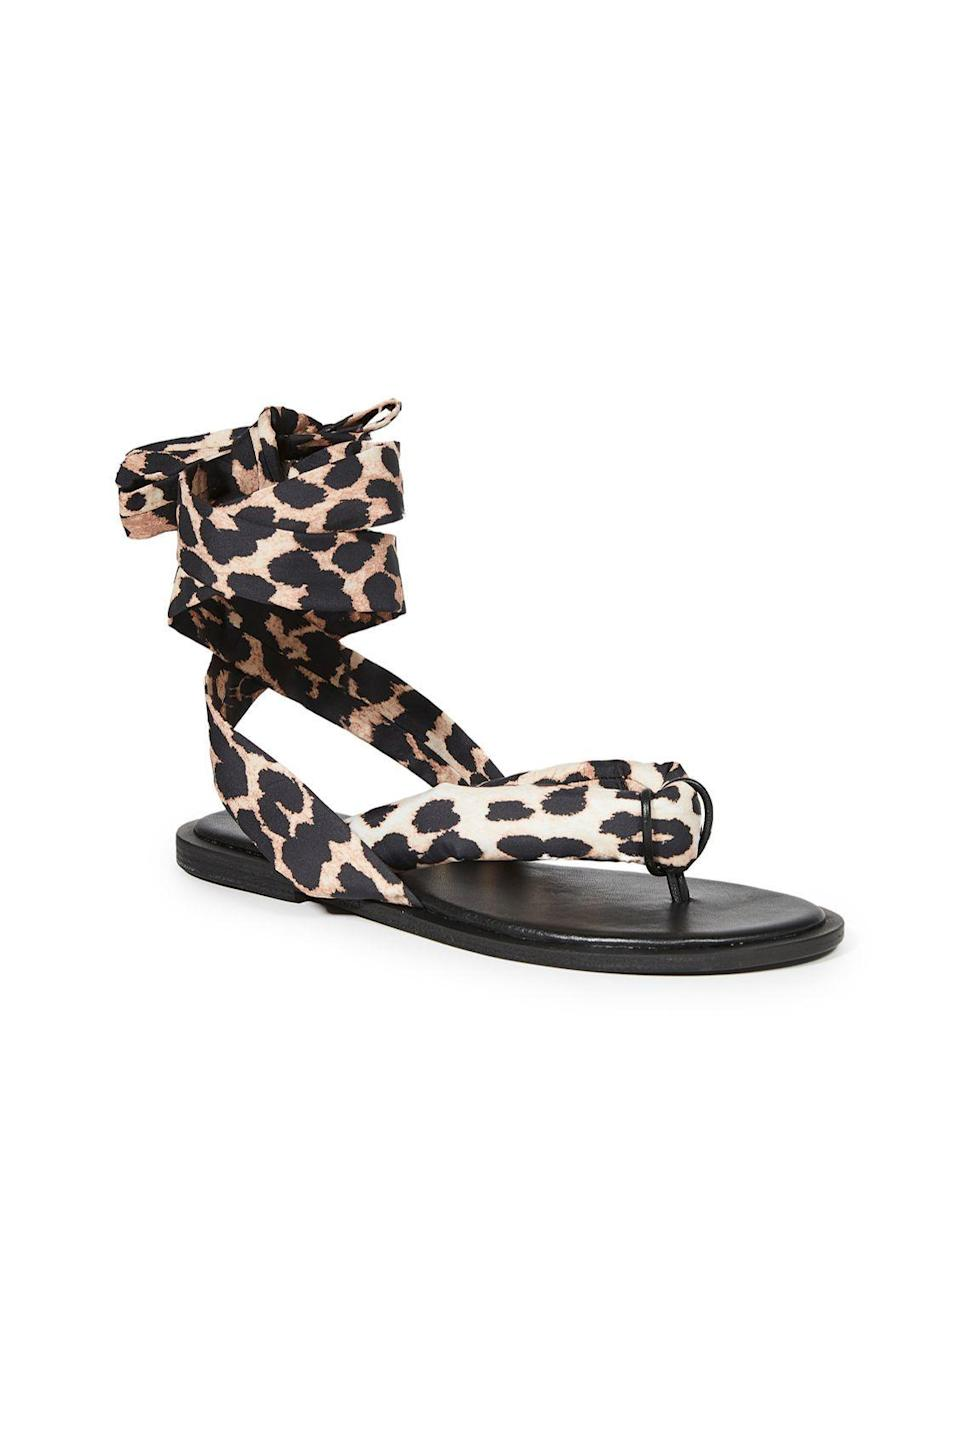 """<p><strong>Ganni</strong></p><p>shopbop.com</p><p><strong>$155.00</strong></p><p><a href=""""https://go.redirectingat.com?id=74968X1596630&url=https%3A%2F%2Fwww.shopbop.com%2Fpuffy-wrap-sandals-ganni%2Fvp%2Fv%3D1%2F1507389545.htm&sref=https%3A%2F%2Fwww.marieclaire.com%2Ffashion%2Fg34126792%2Fspring-shoe-trends-2021%2F"""" rel=""""nofollow noopener"""" target=""""_blank"""" data-ylk=""""slk:Shop Now"""" class=""""link rapid-noclick-resp"""">Shop Now</a></p><p>Animal print? Check. Extra volume? Check. Ankle wrap detail? Check. Ideal summer sandal? Big check.</p>"""